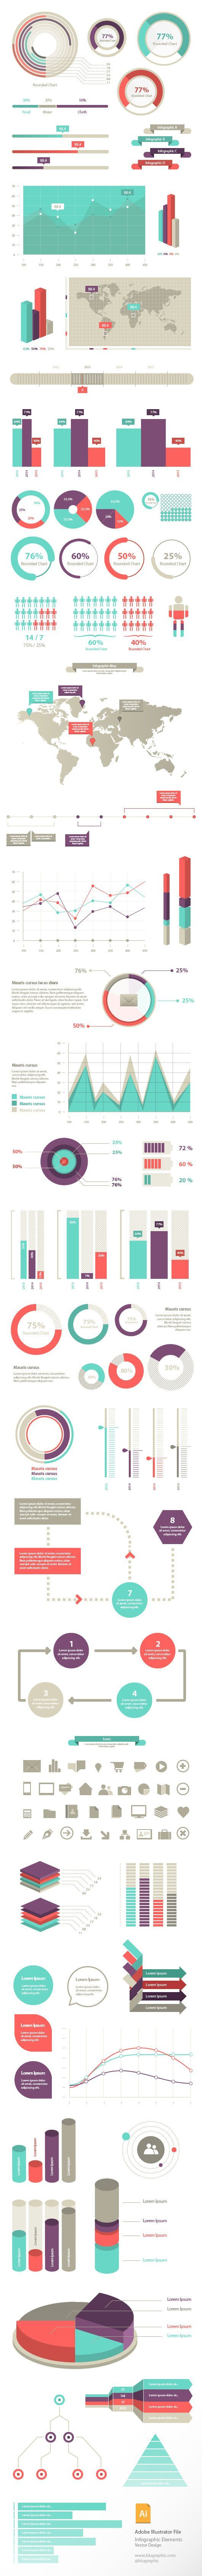 100+ Free Infographic Elements | #infographic #design #elements: